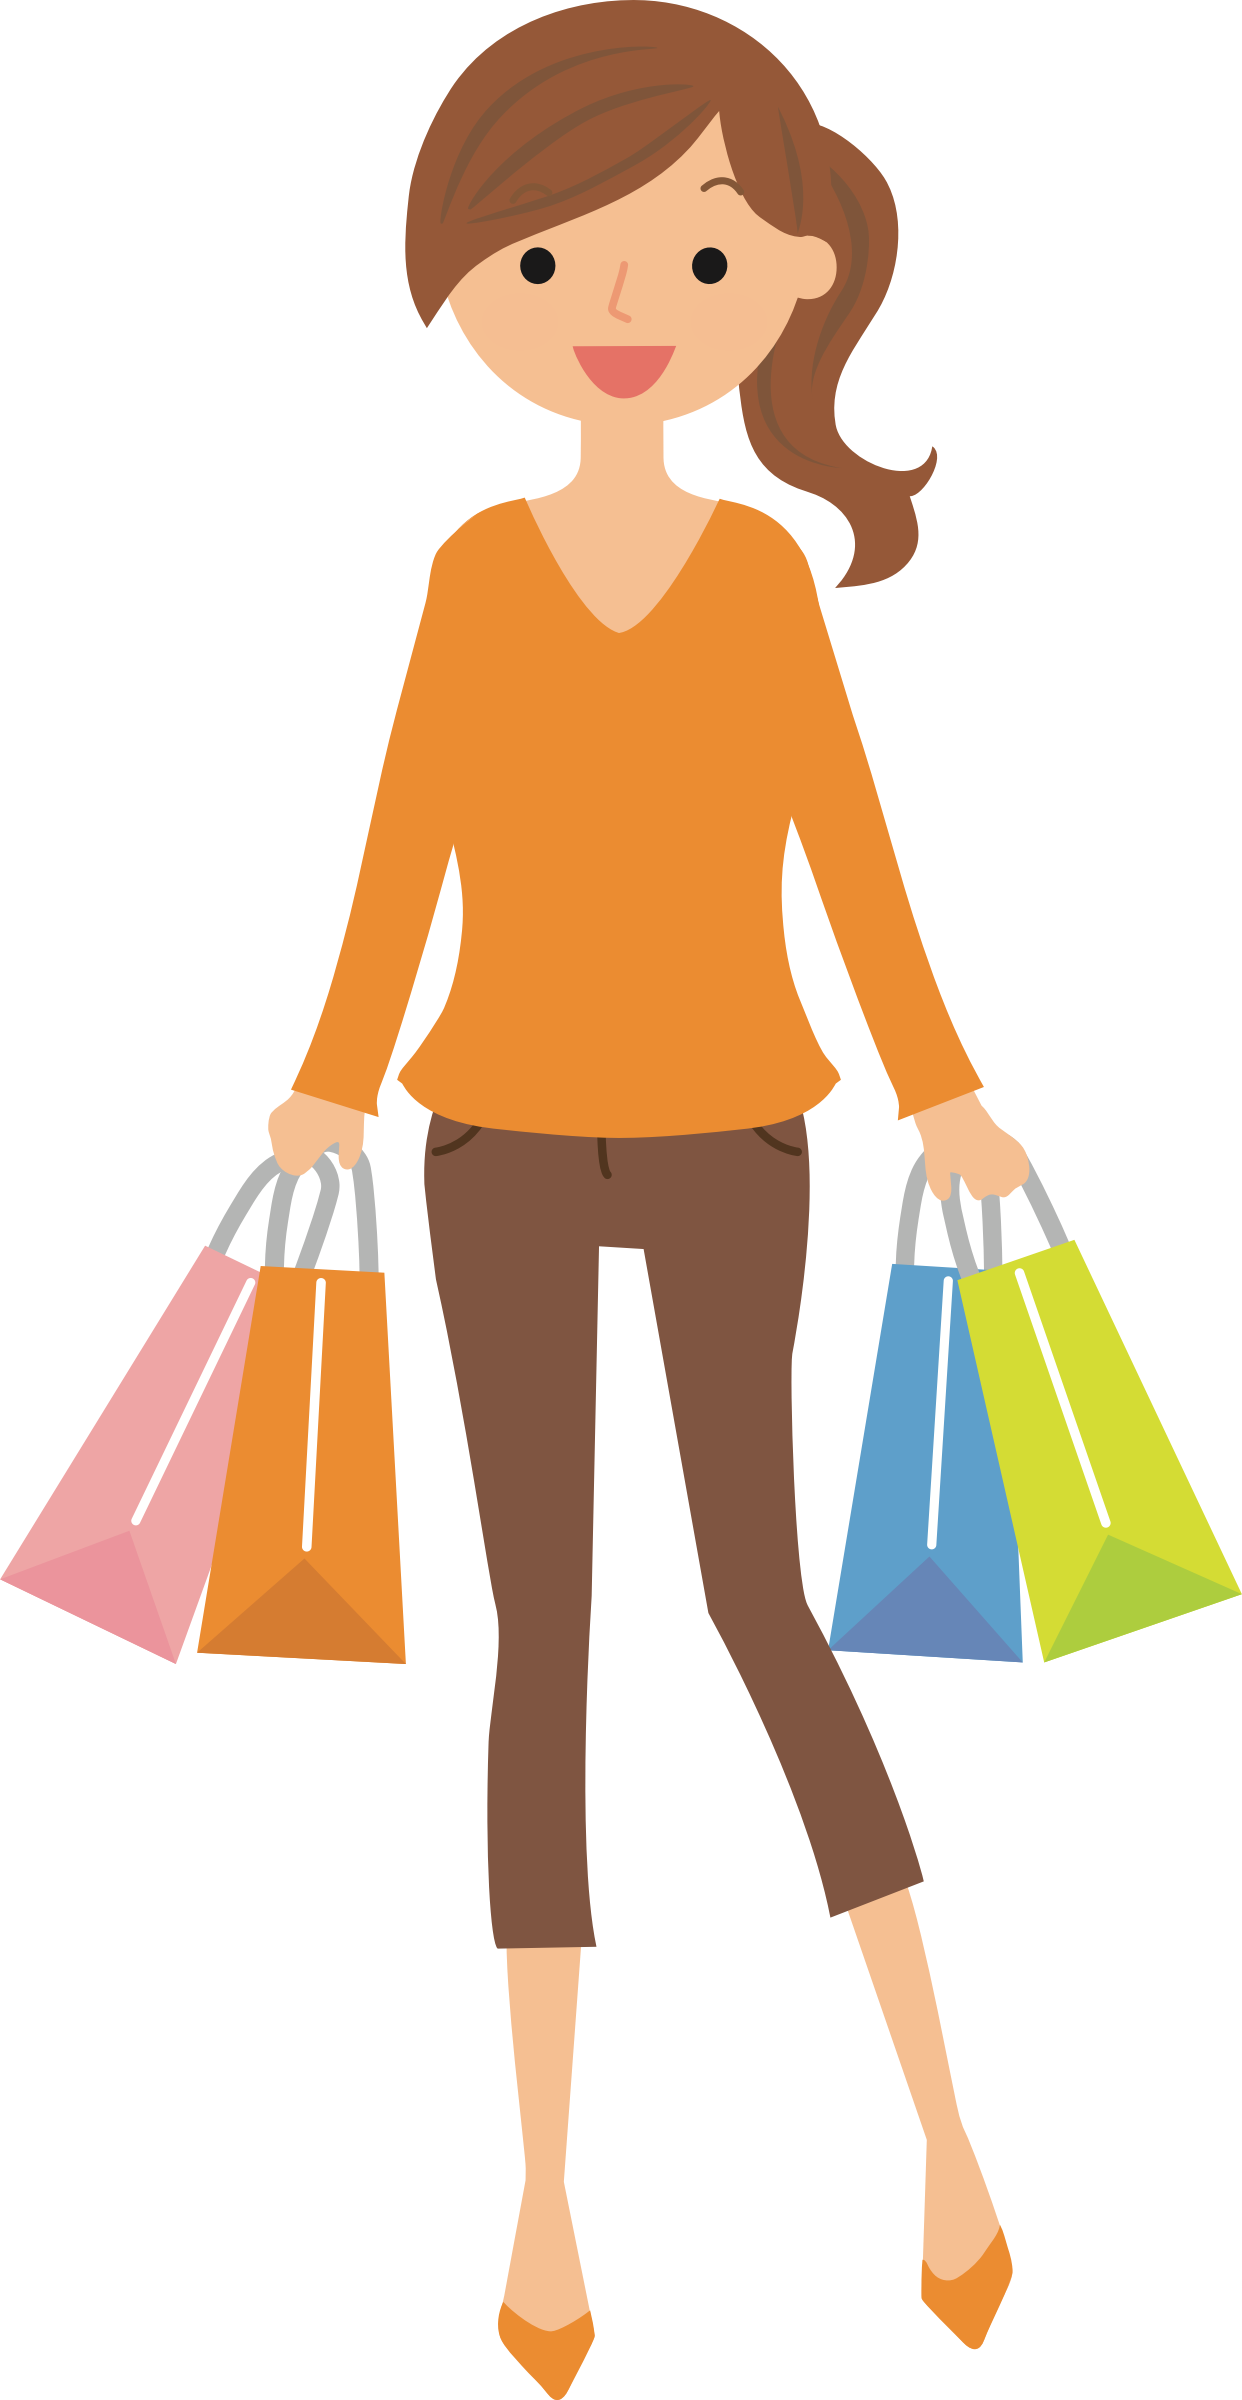 Perfume clipart woman. Https openclipart org detail